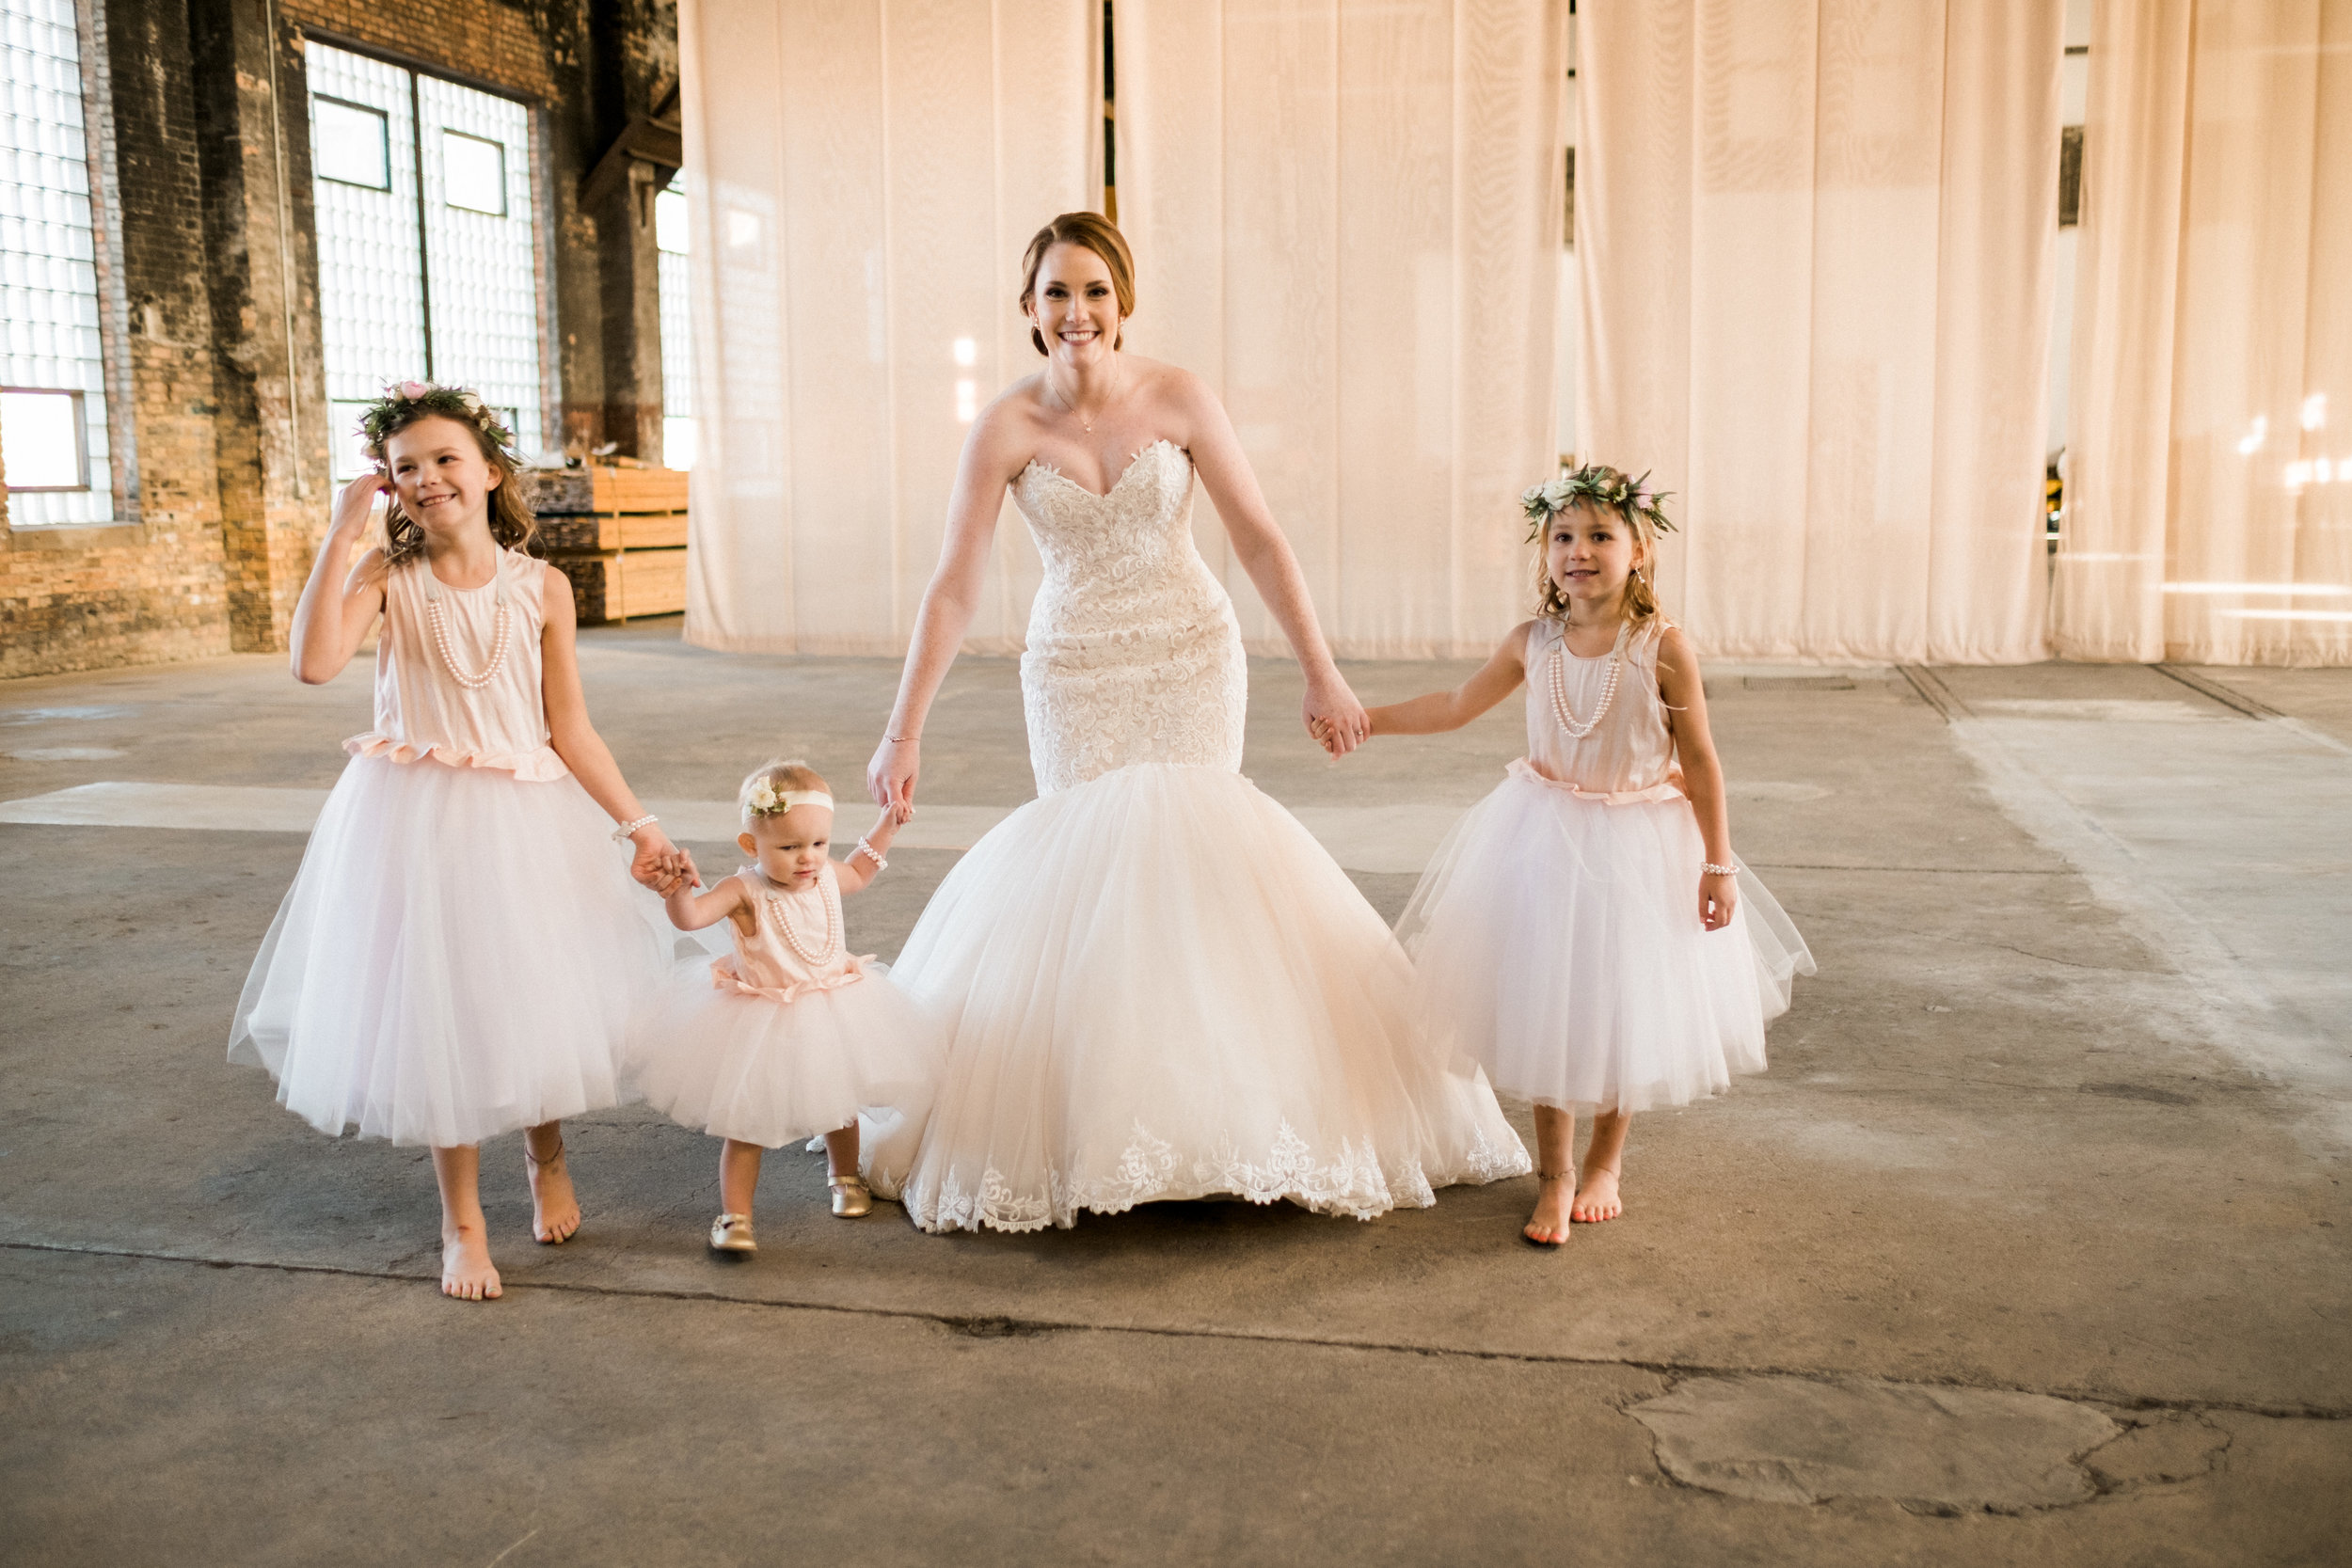 bride walking with the flower girls just before the wedding